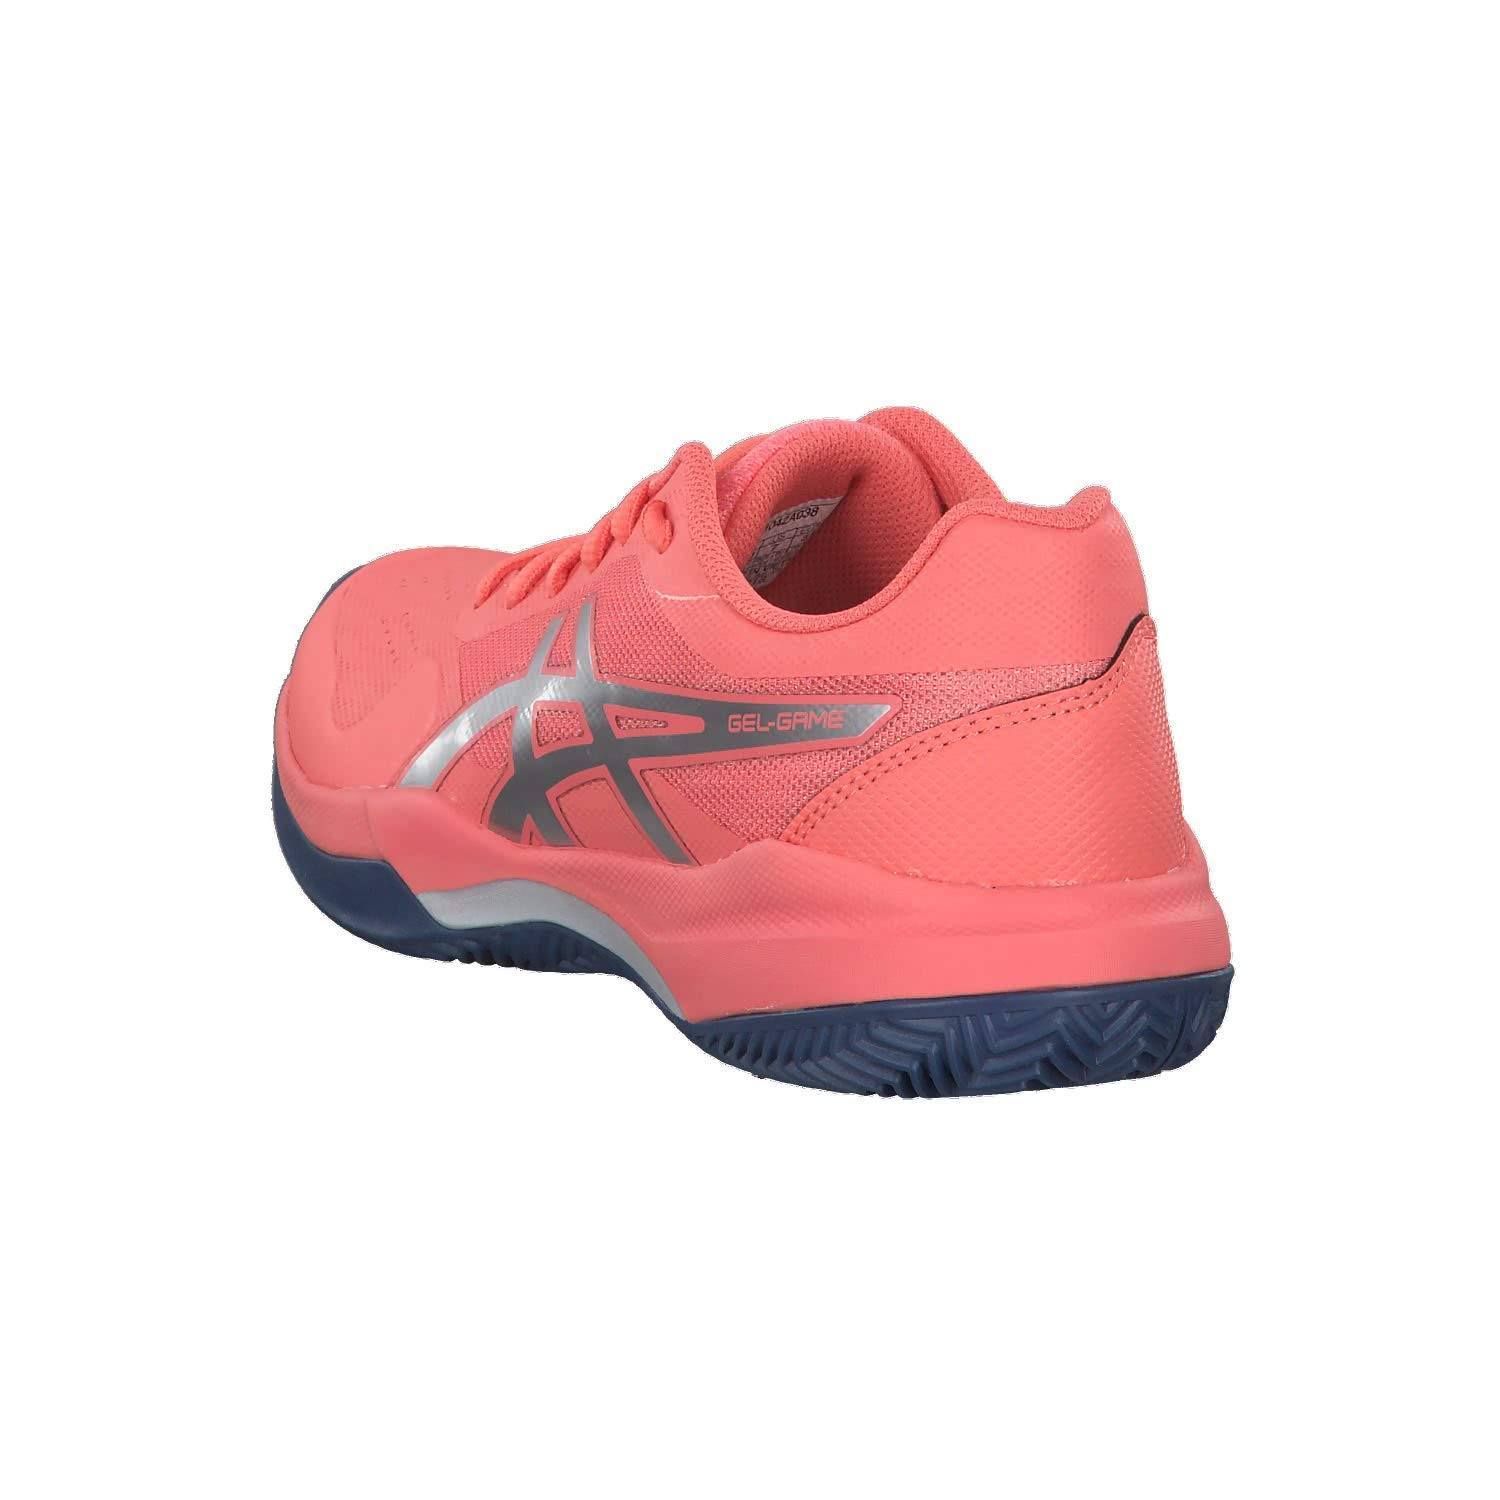 ASICS Damen Gel-Game 7 Clay/Oc Tennisschuhe papaya-silver